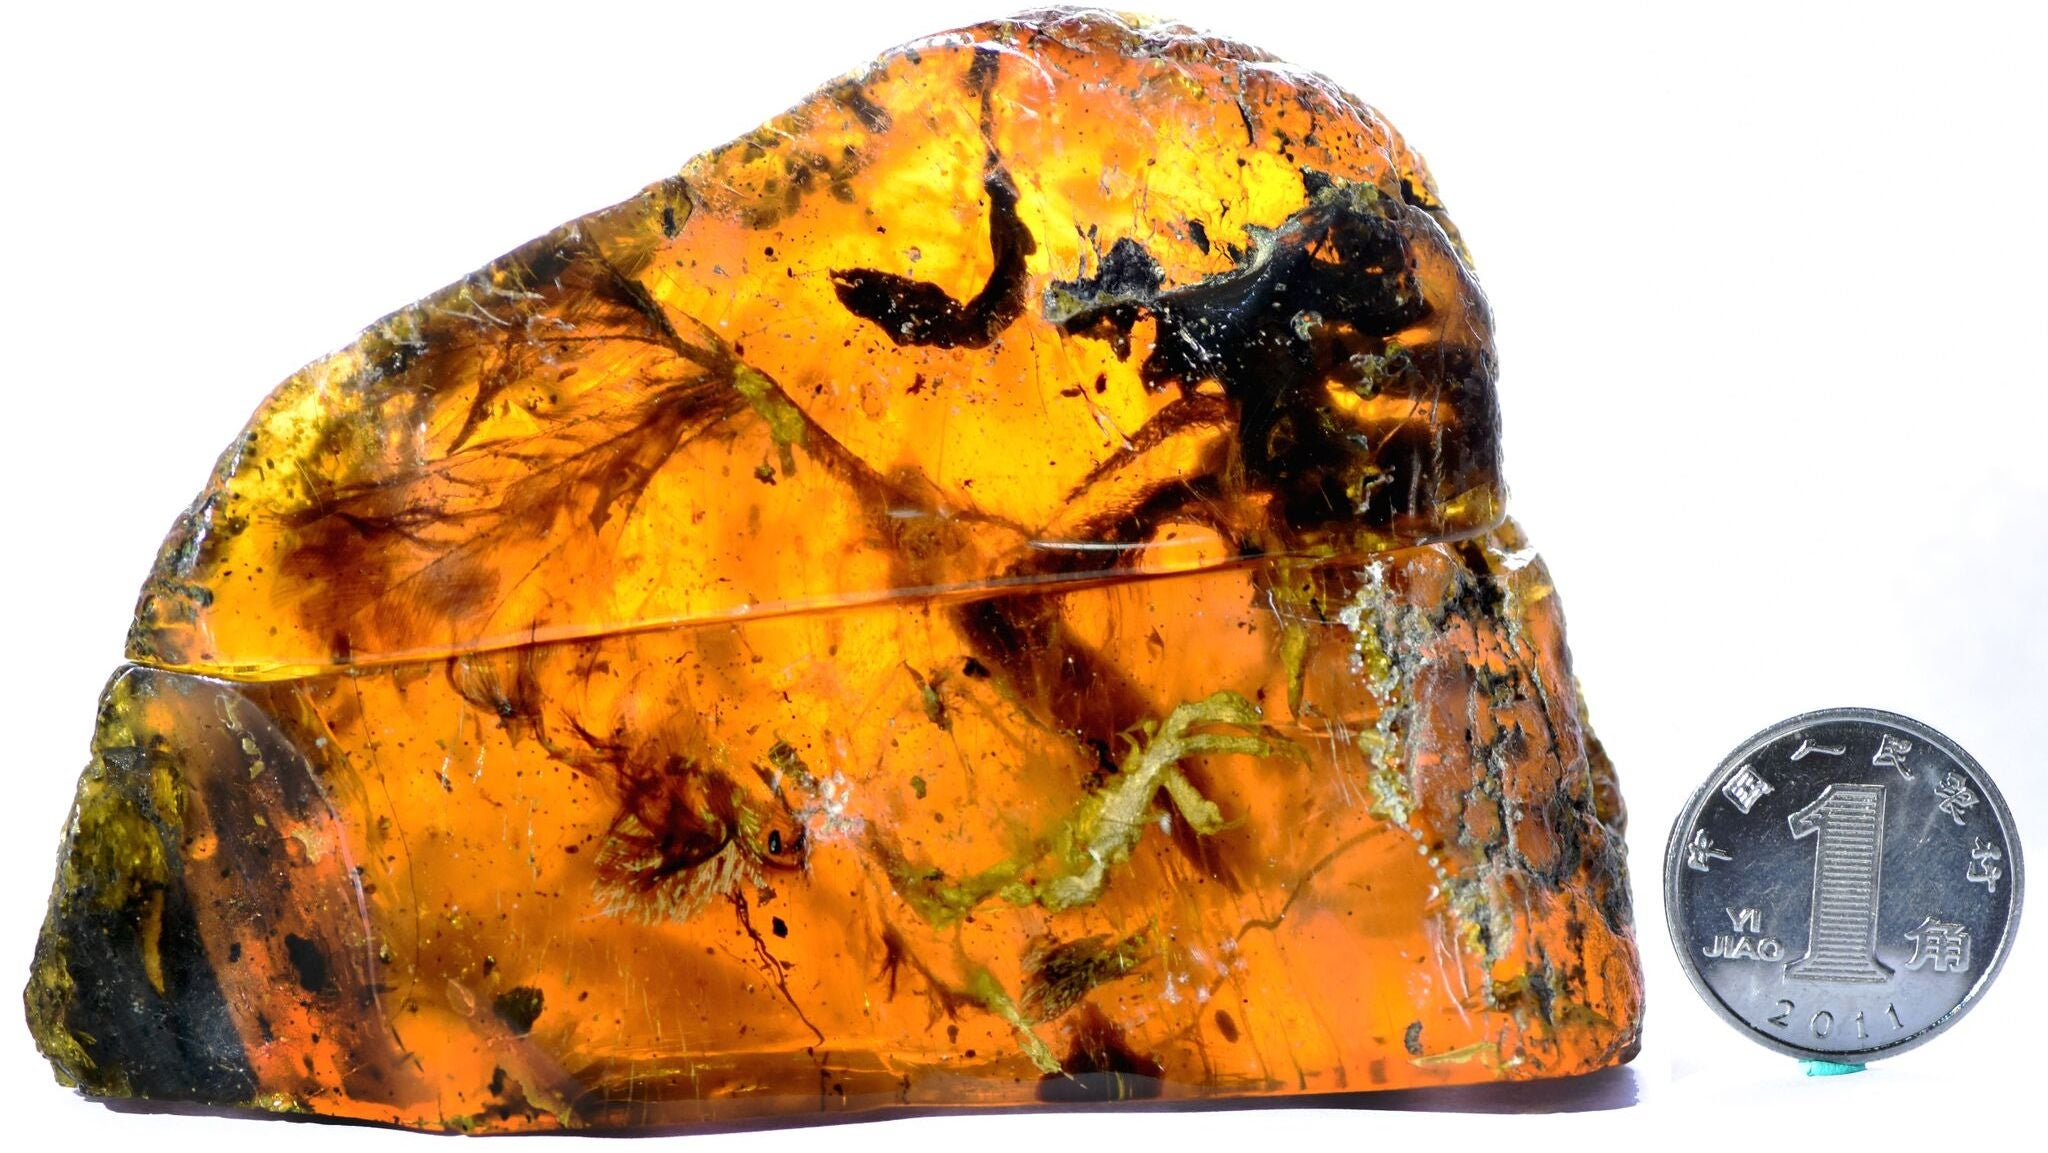 Scientists Find 100 Million-Year-Old,Nearly Complete Baby Bird Trapped In Amber